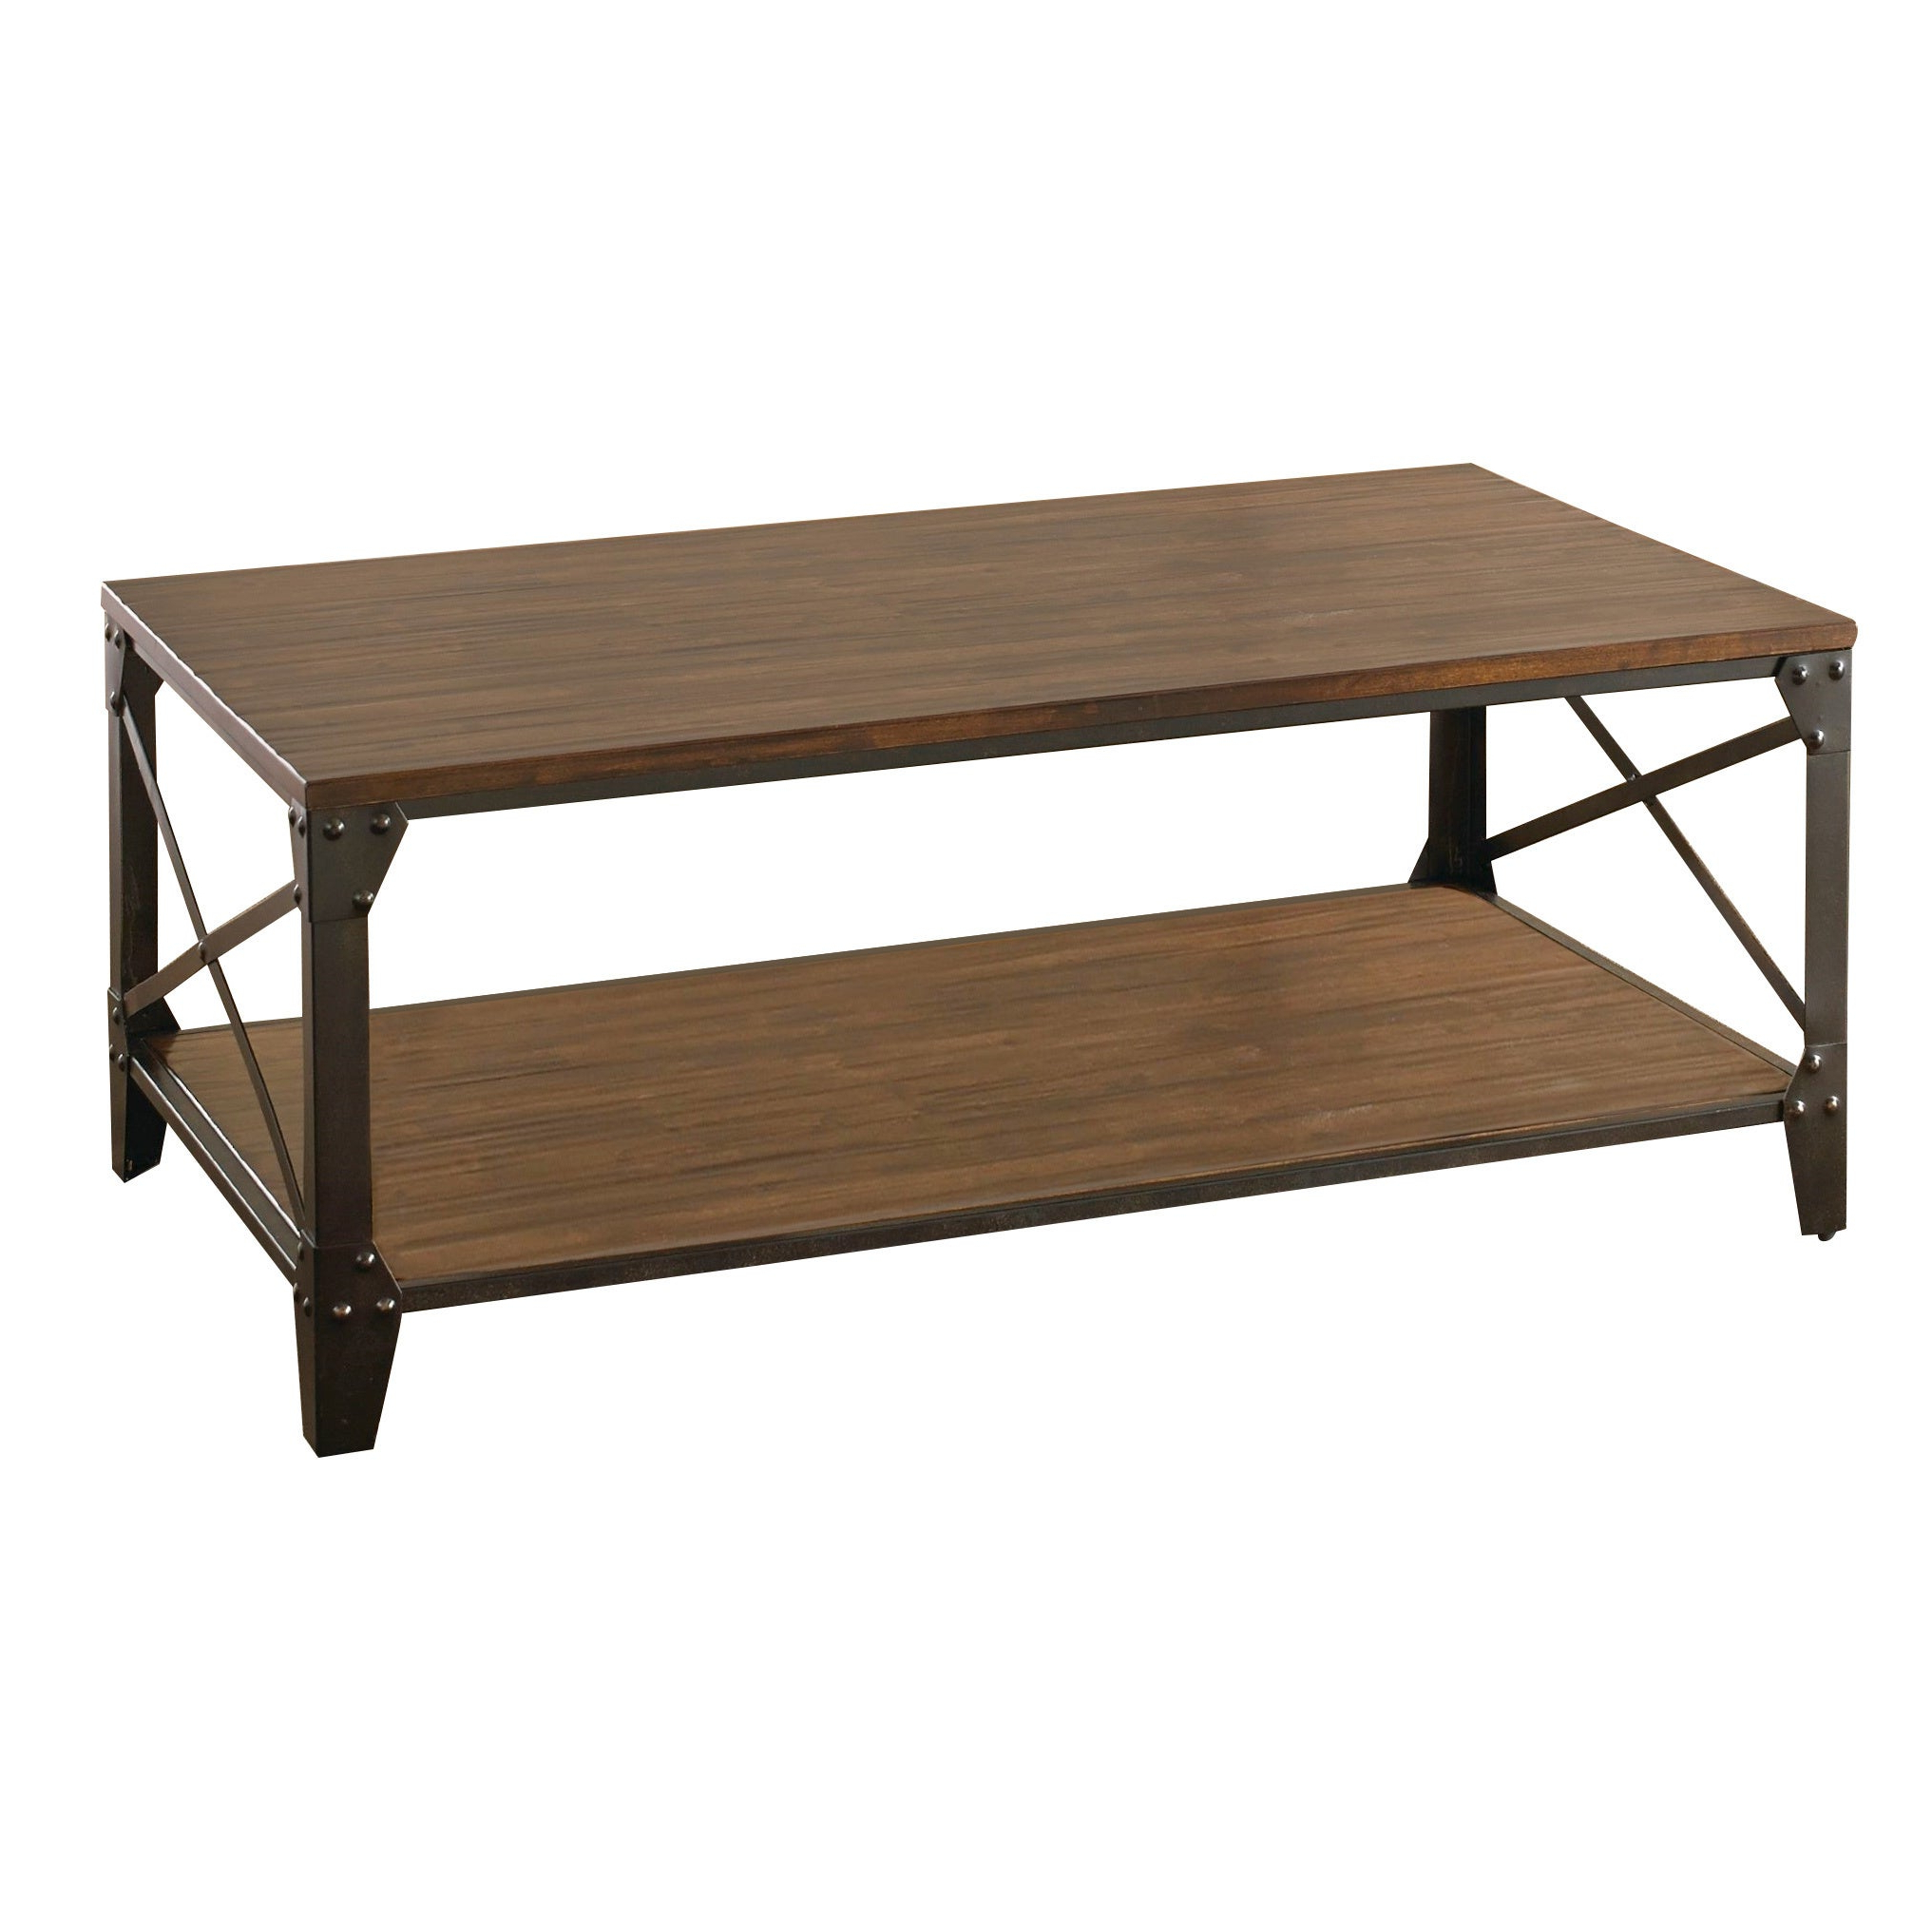 Carbon Loft Fischer Brown Solid Birch And Iron Rustic Coffee Table Regarding Most Recently Released Carbon Loft Kenyon Natural Rustic Coffee Tables (View 10 of 20)